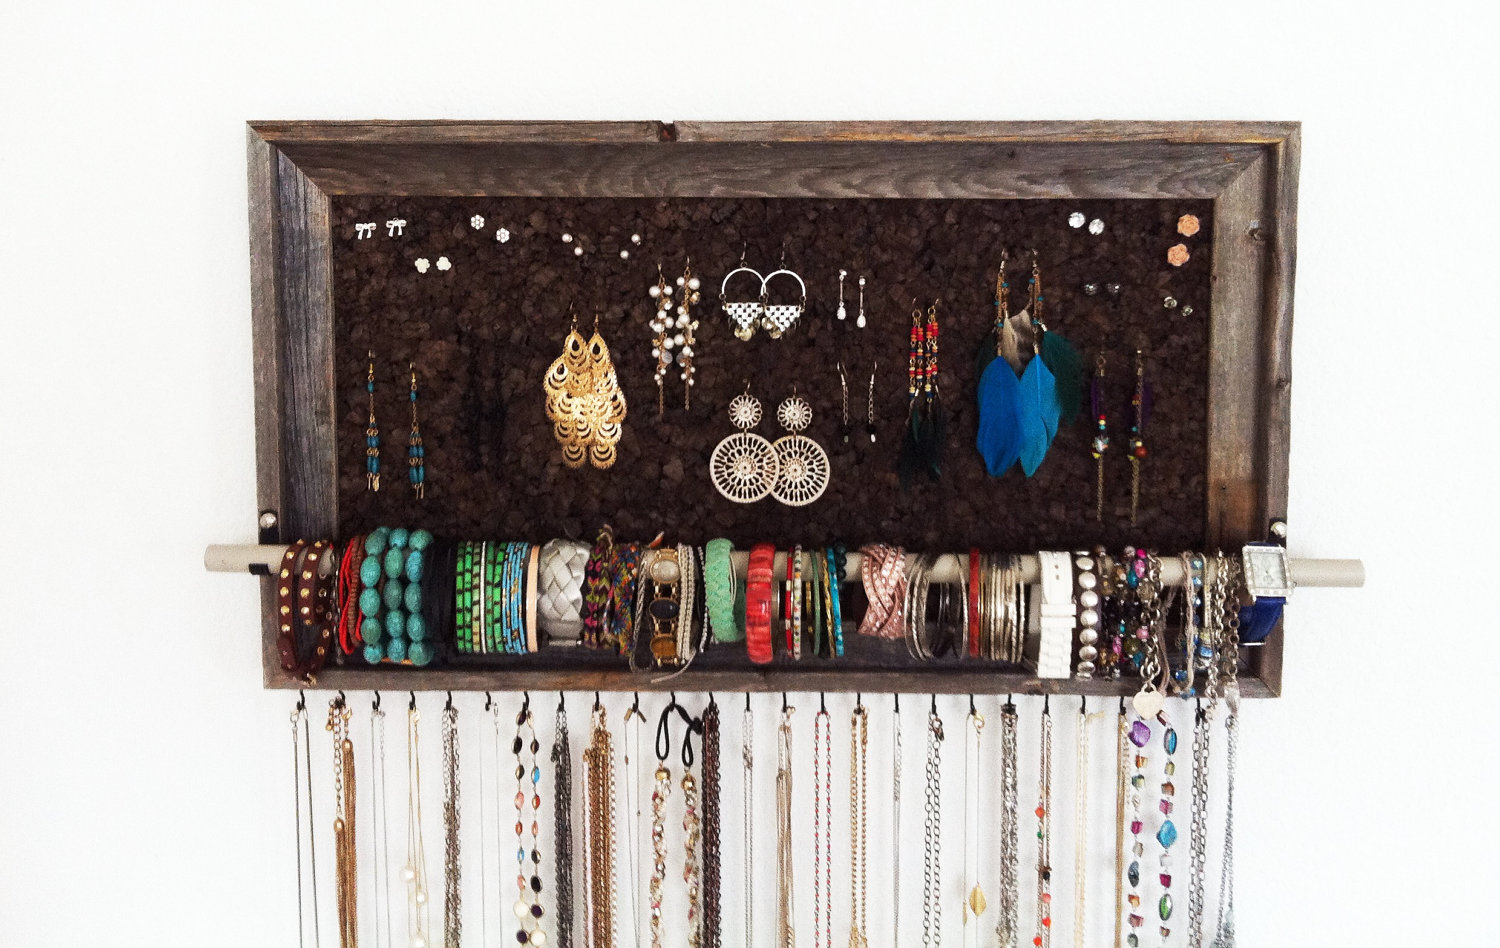 A very rustic look from this large barn wood jewelry organizer by AfterTheLeavesFall. Serves very well for keeping earrings, bracelets and necklaces.